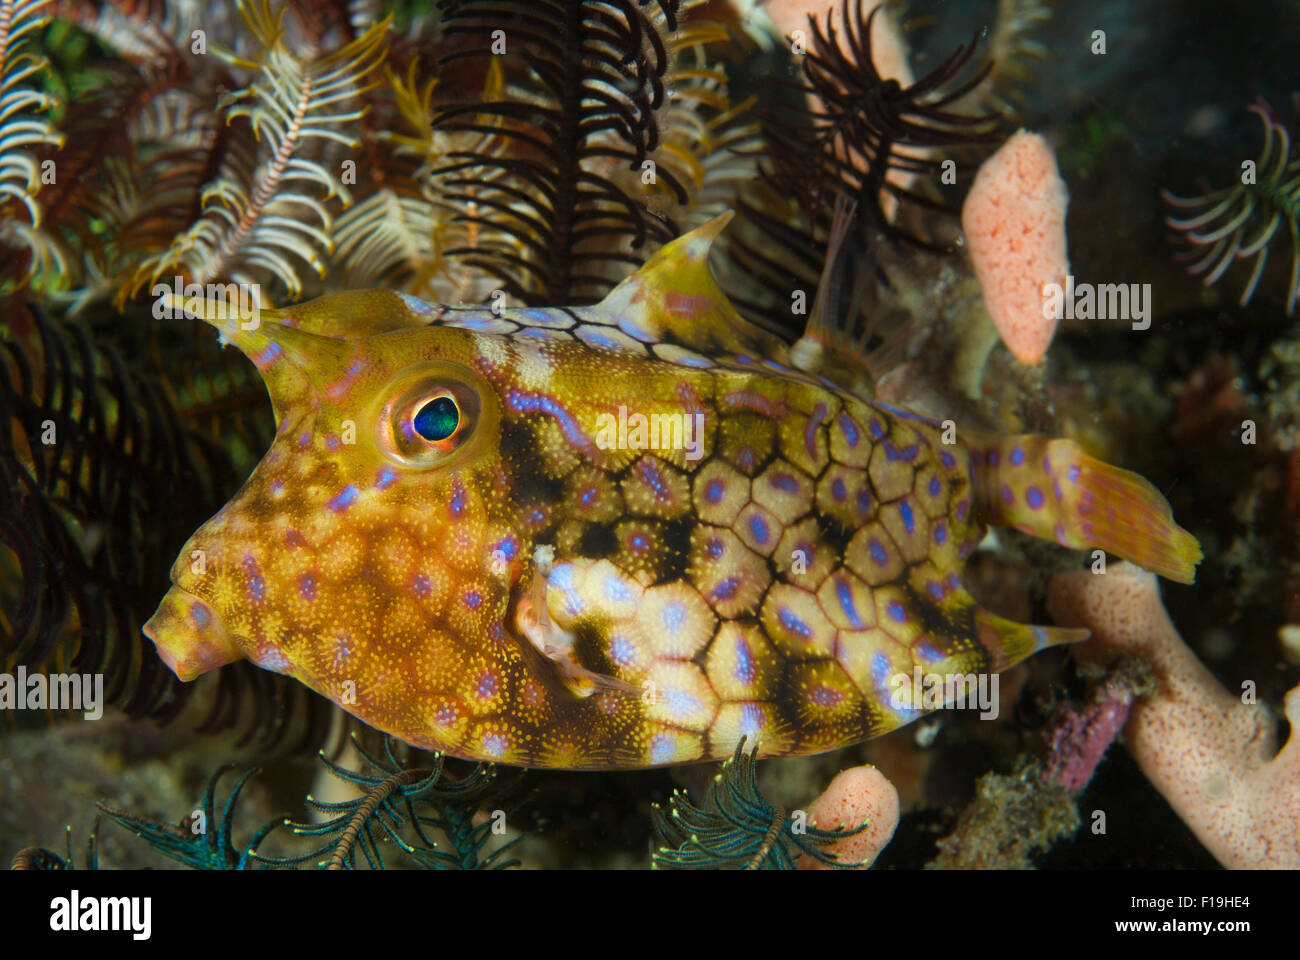 px52037-D. Longhorn Cowfish (Lactoria comuta). Indonesia, tropical Pacific Ocean. Photo Copyright © Brandon - Stock Image